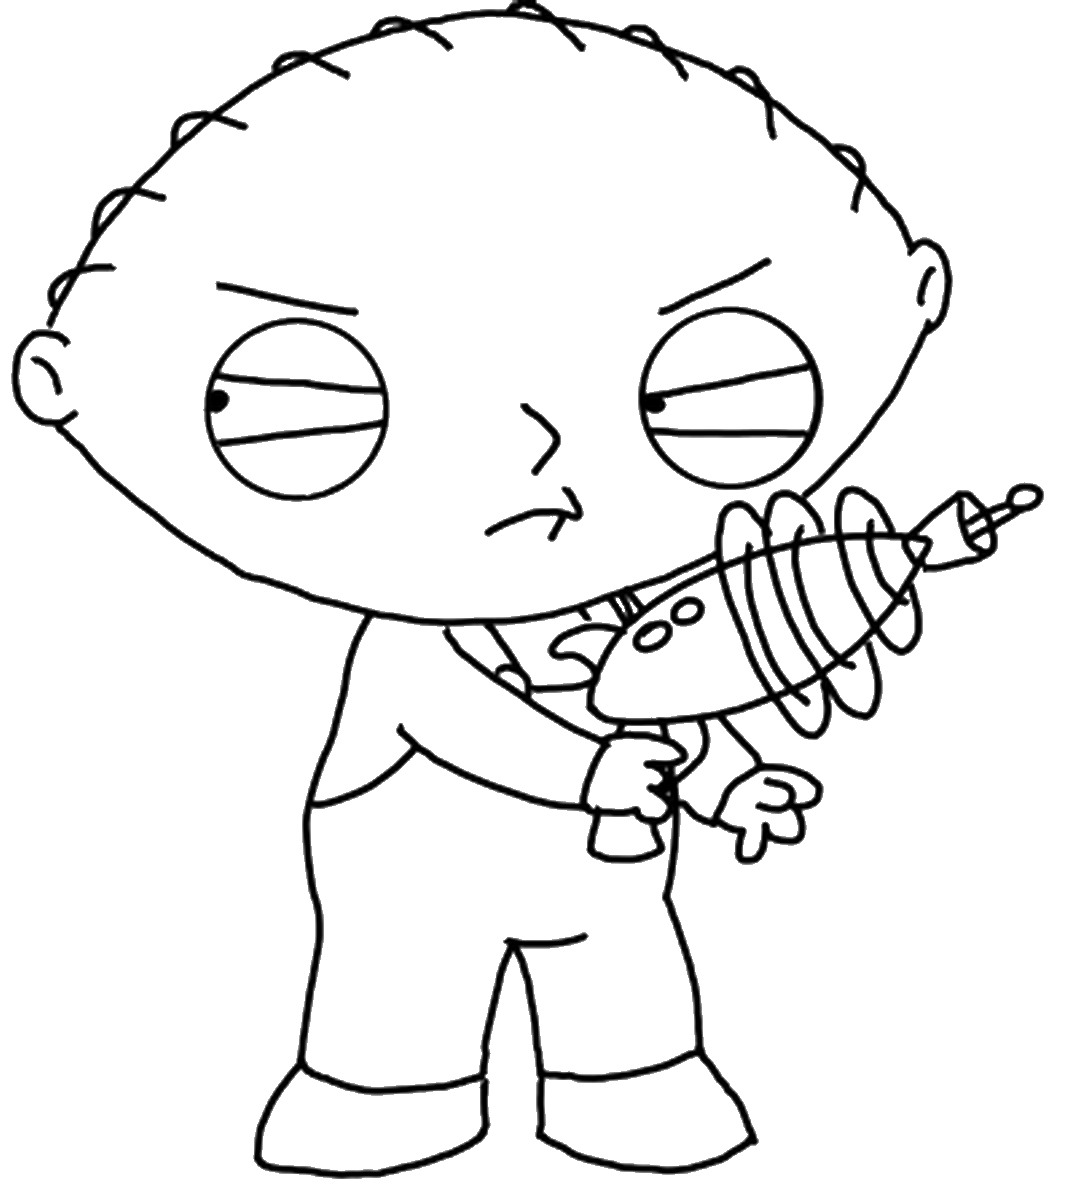 family guy coloring pages family guy coloring pages family members free printable guy family coloring pages